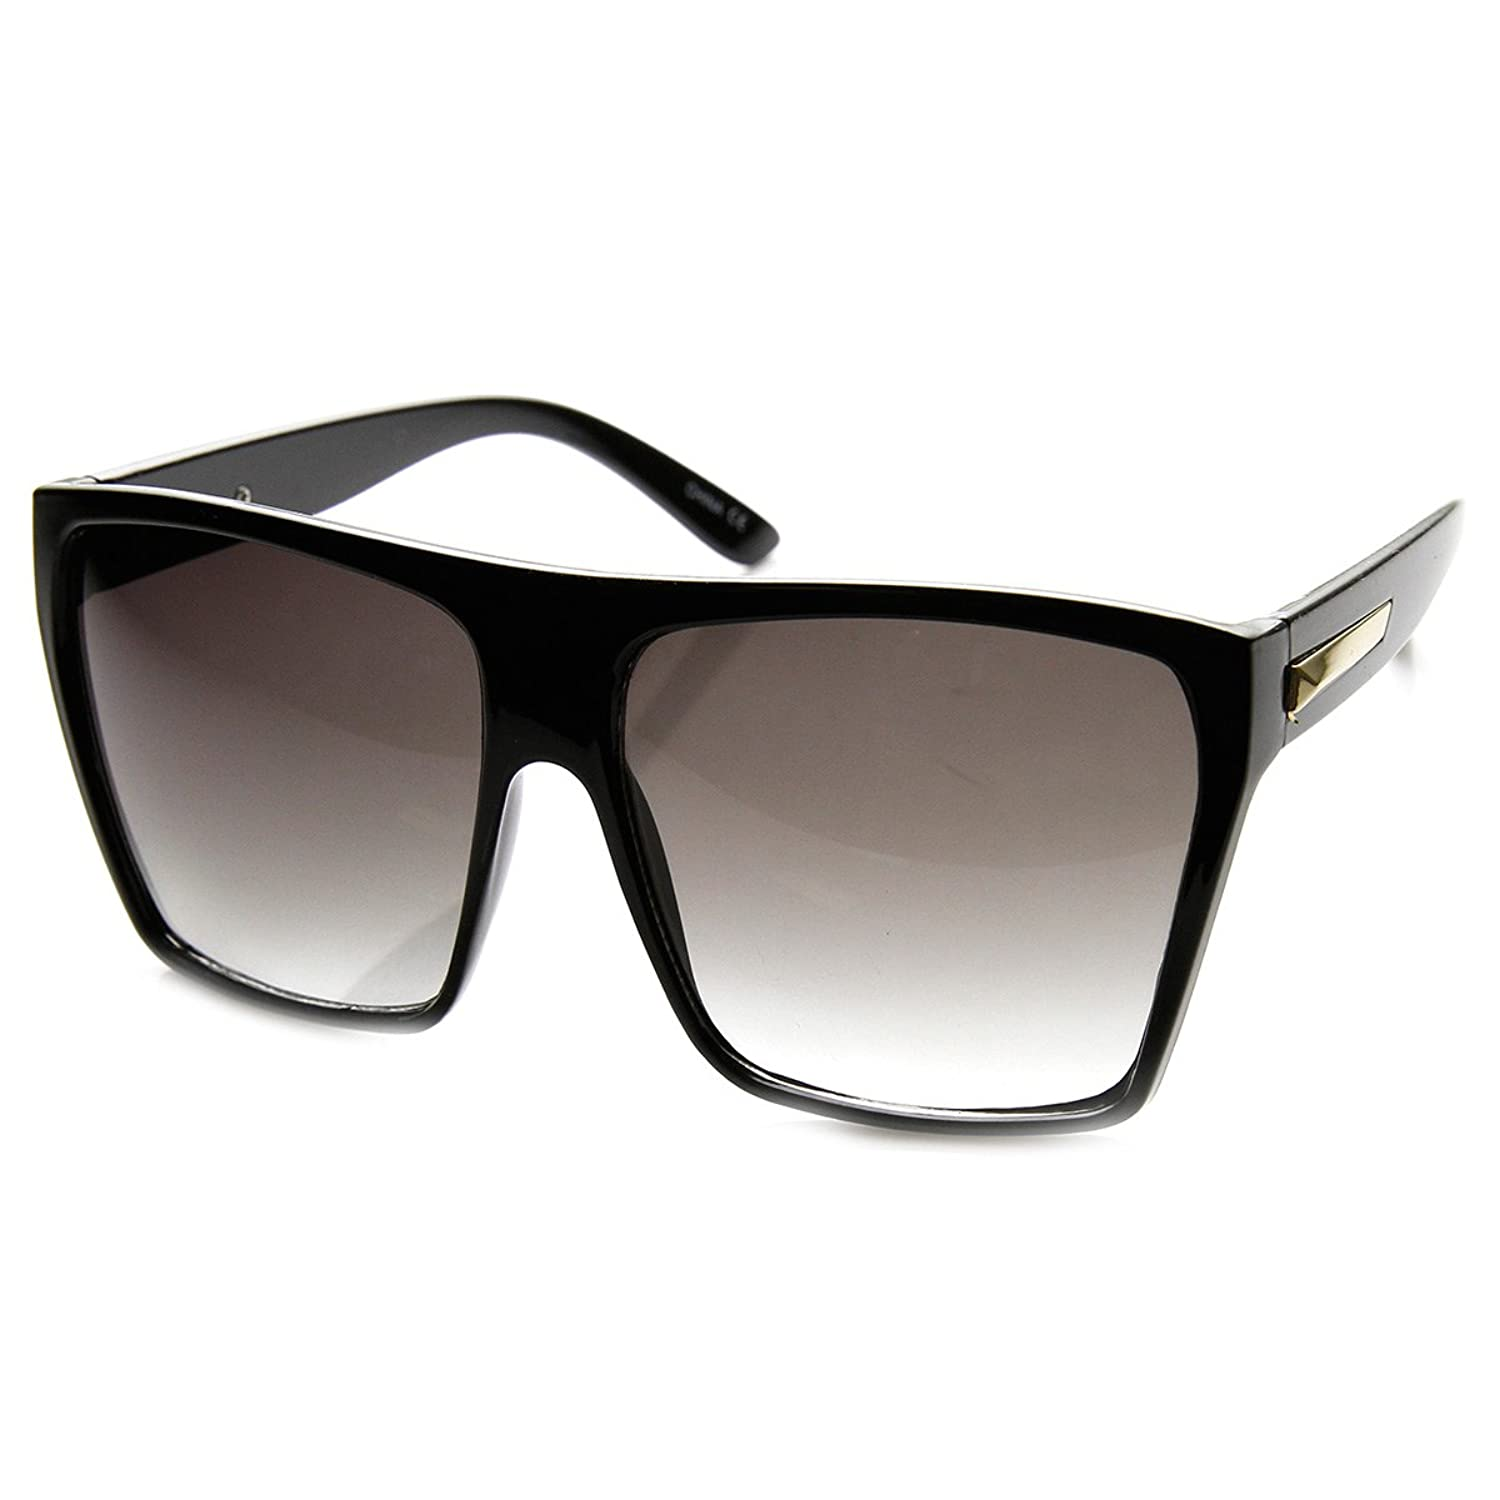 Super Flat Top Sunglasses Replica Square Flat Top Sunglasses